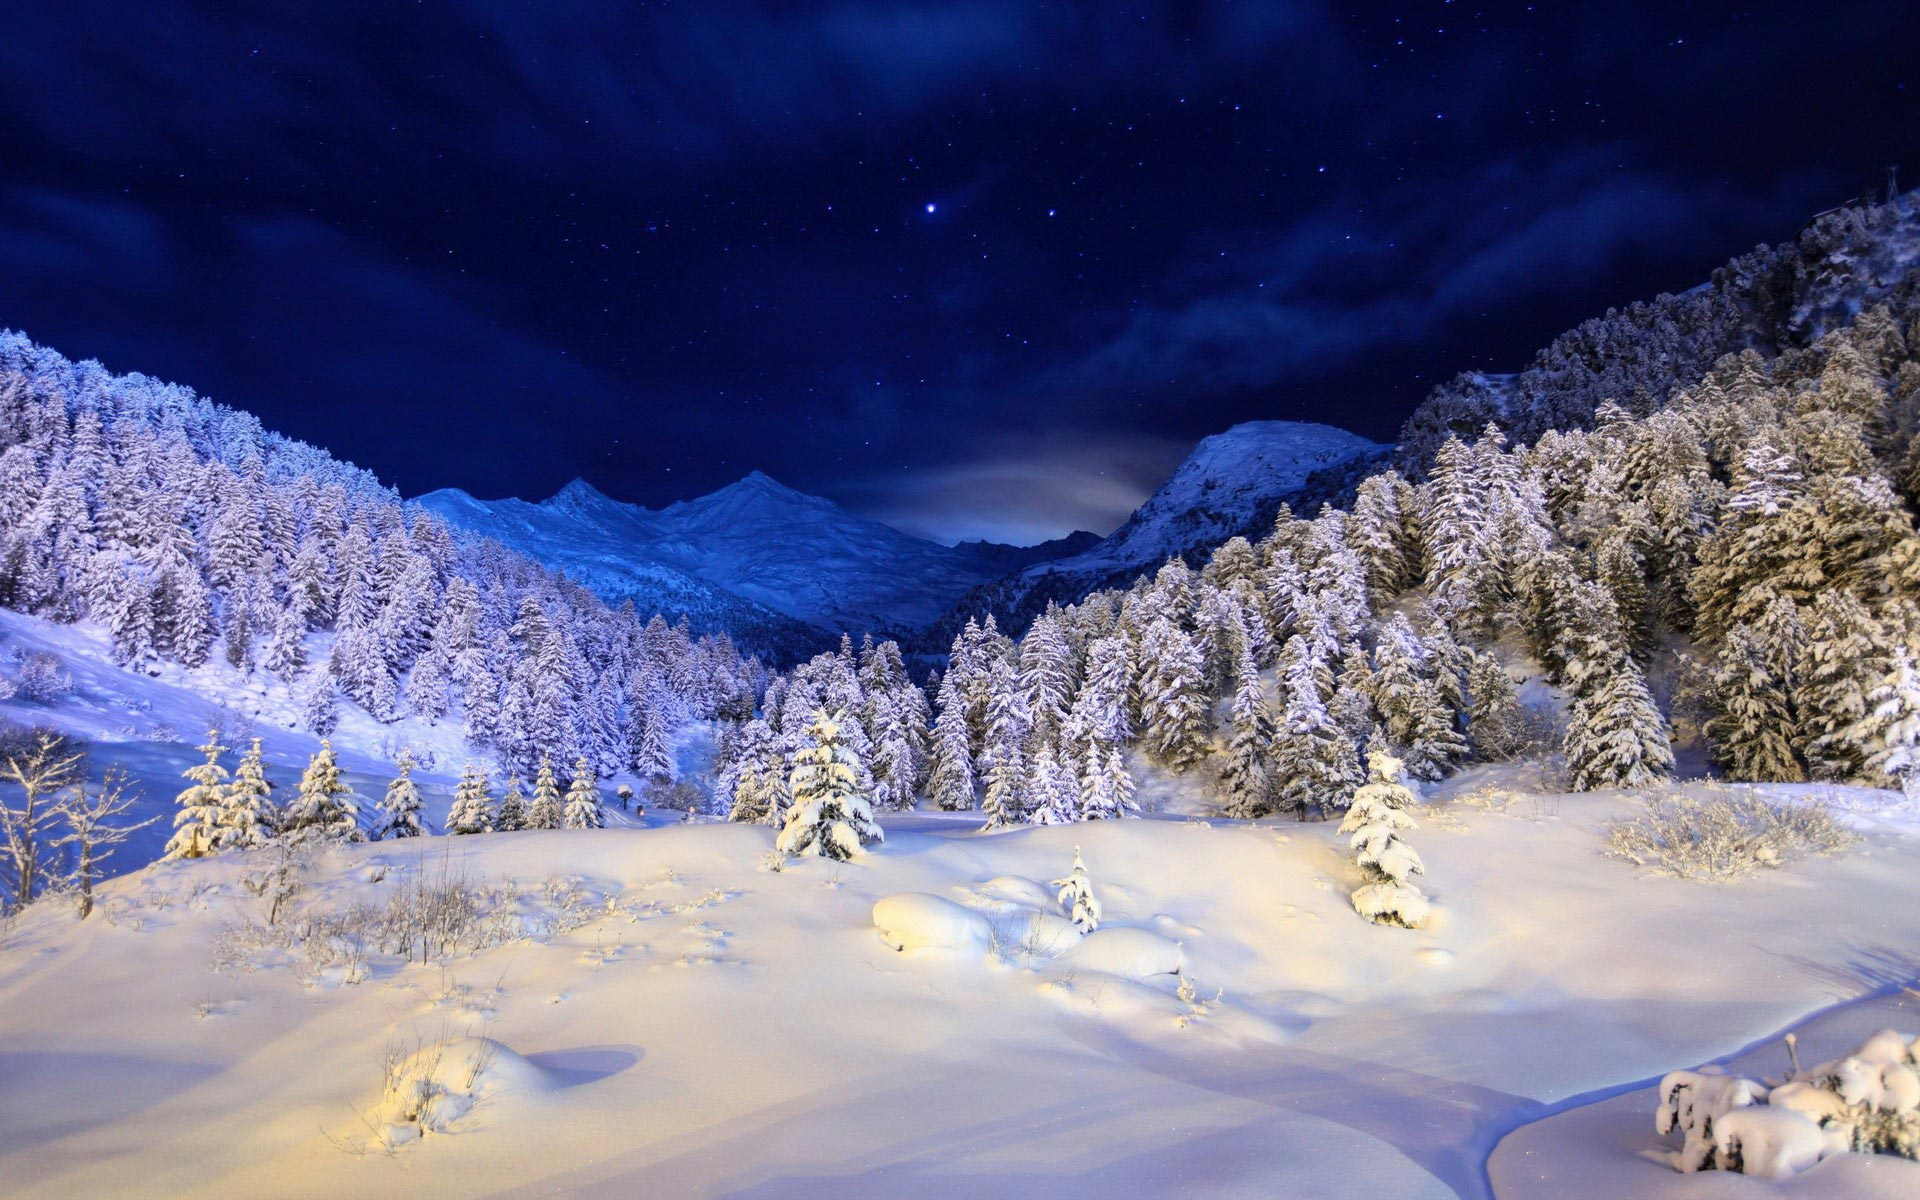 Pictures of Winter Night HD, 1920x1200 px, 05/12/2015